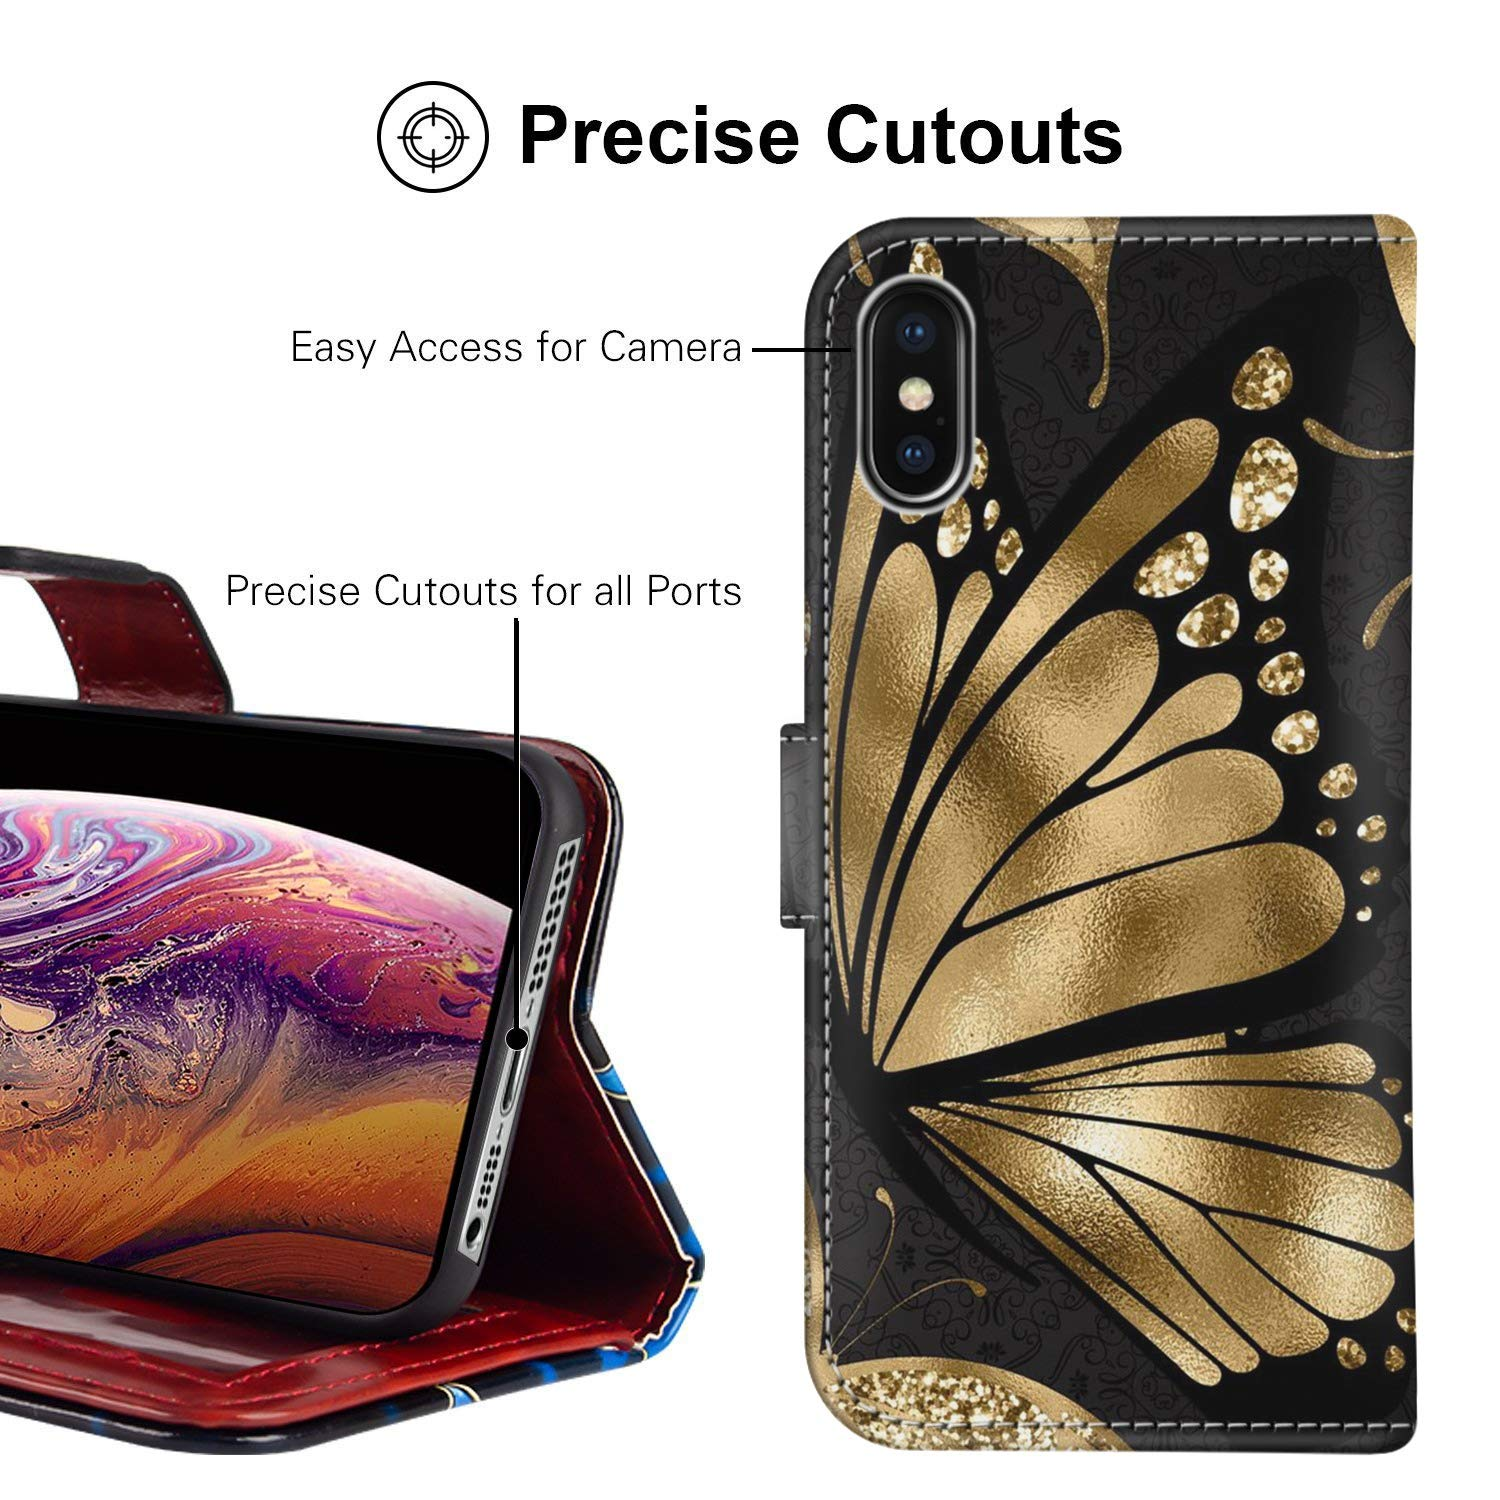 Mobile Phone Accessories Gold Dragon iPhone 6S 6 Plus Wallet Phone Case JQLOVE Apple Series PU Leather Flip Magnetic Clasp with Card Slot Stand Holder Wallet Case for iPhone 6S 6 Plus Gold Dragon